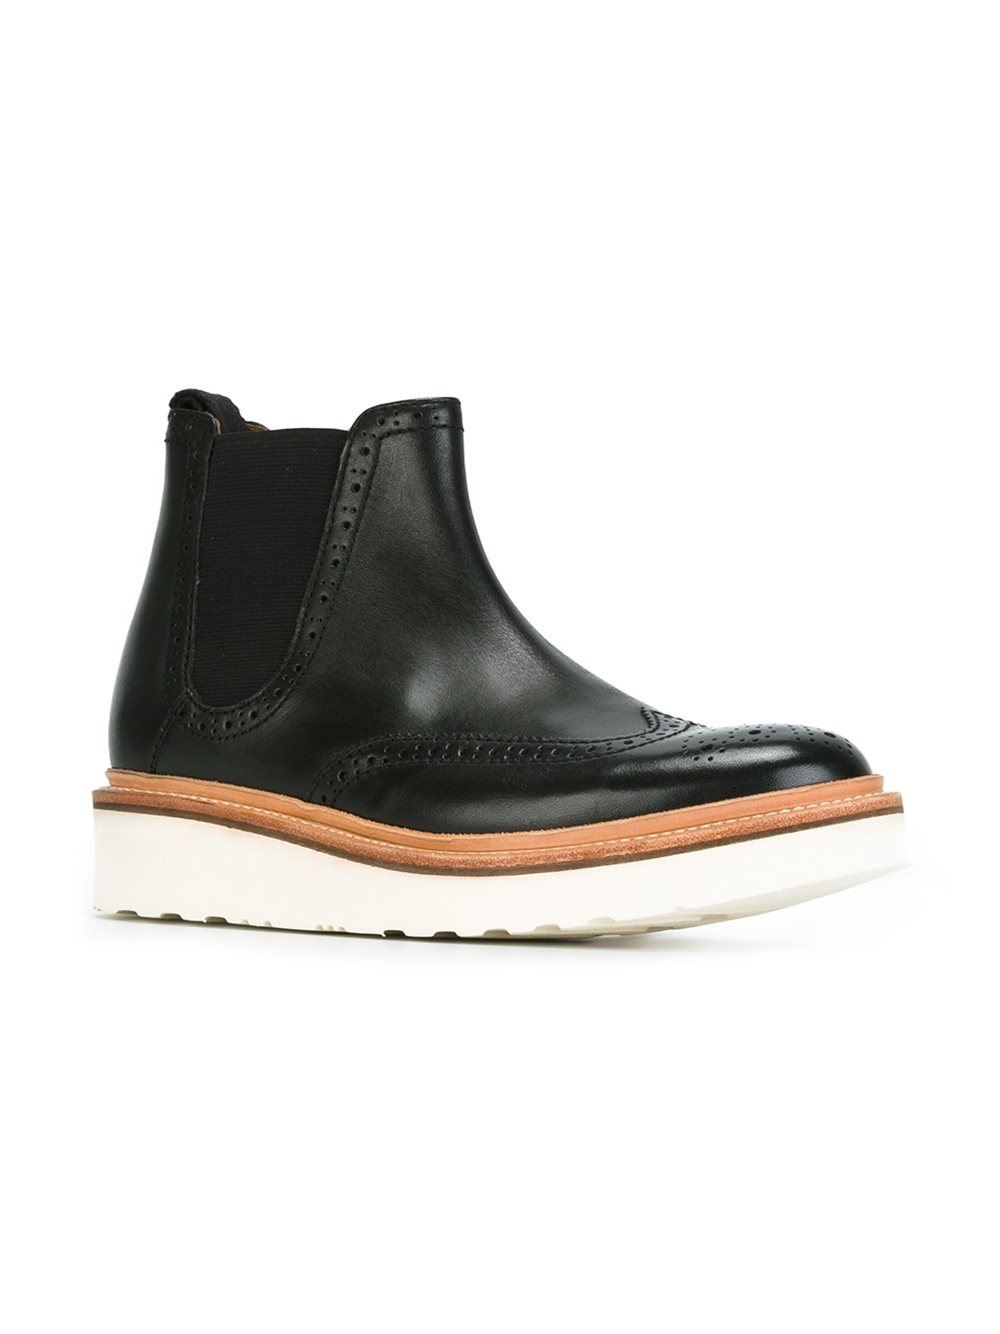 Grenson Leather 'alice' Boots in Black